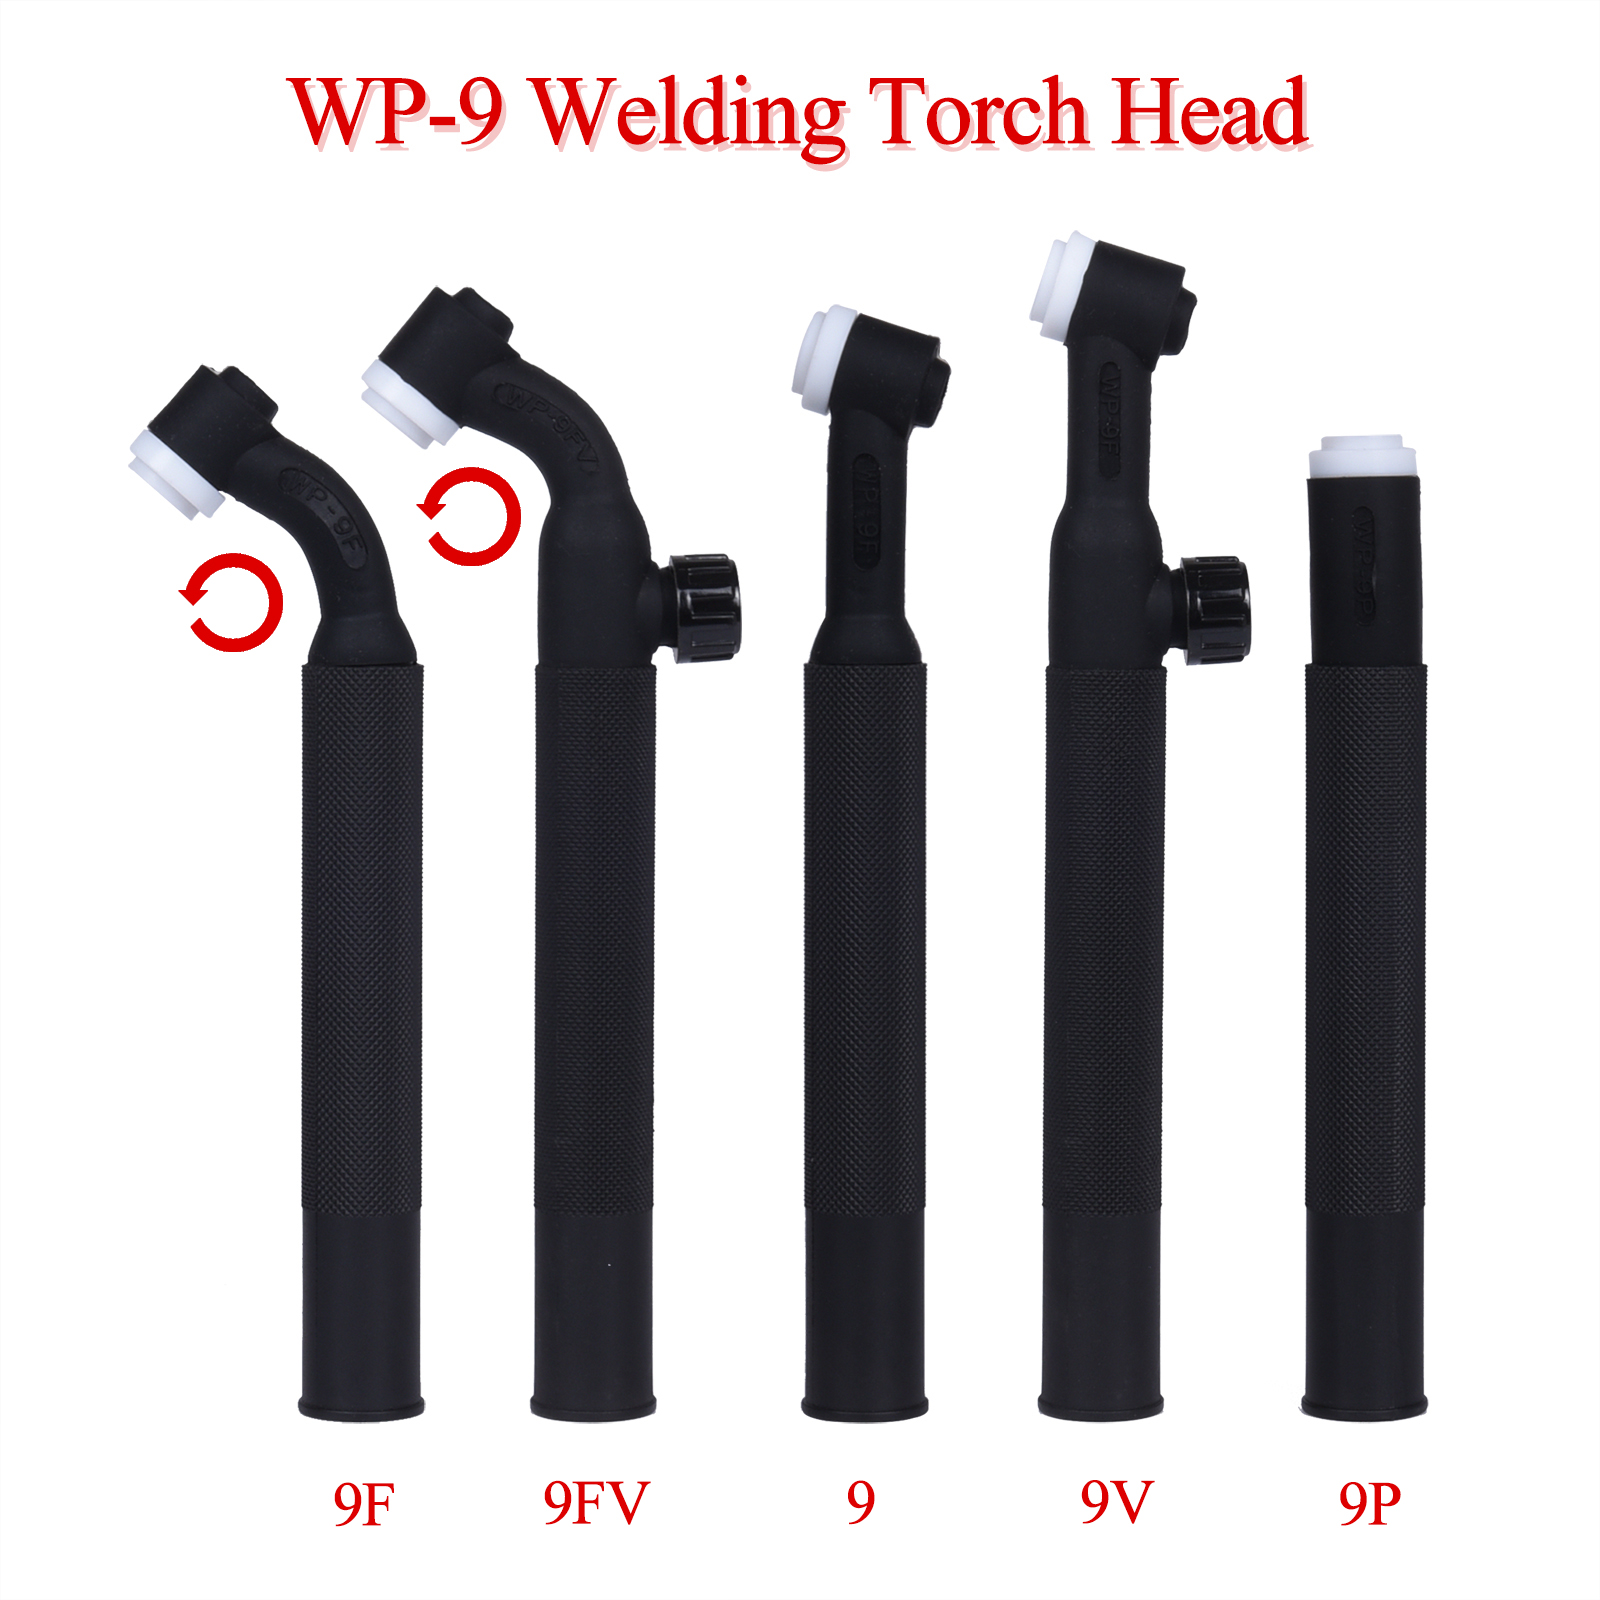 WP9 WP9F 9F 9V 9FV SR9 SR9F SR9V SR9FV SR9P TIG Torch Body Air Cooled Head Rotatable 125 AMP